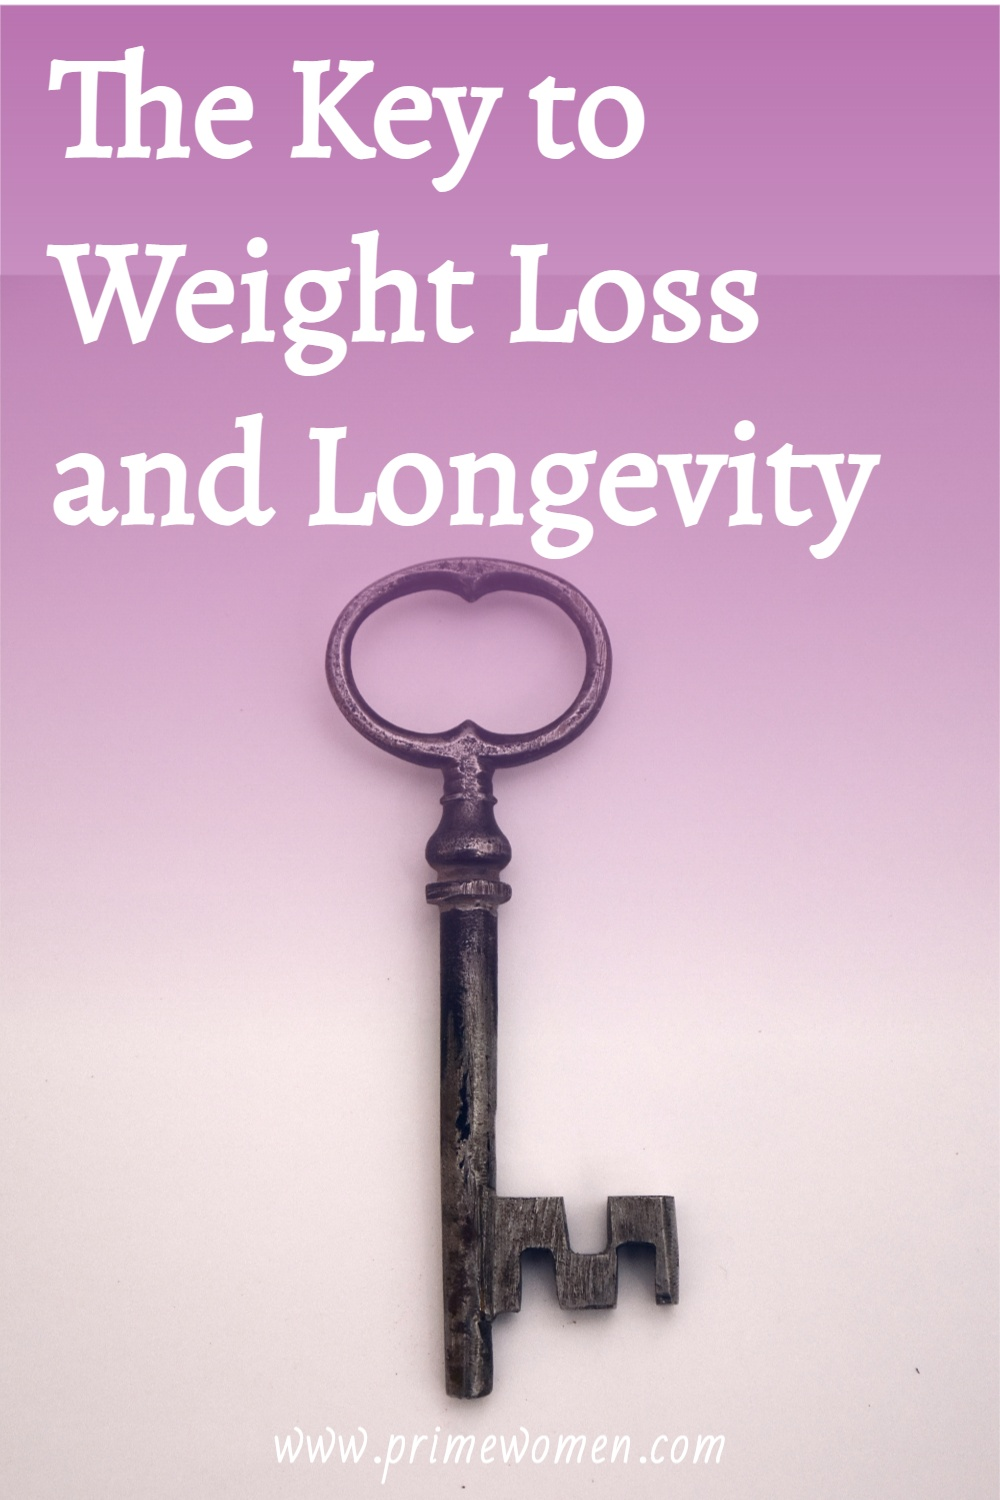 The-Key-to-Weight-Loss-and-Longevity